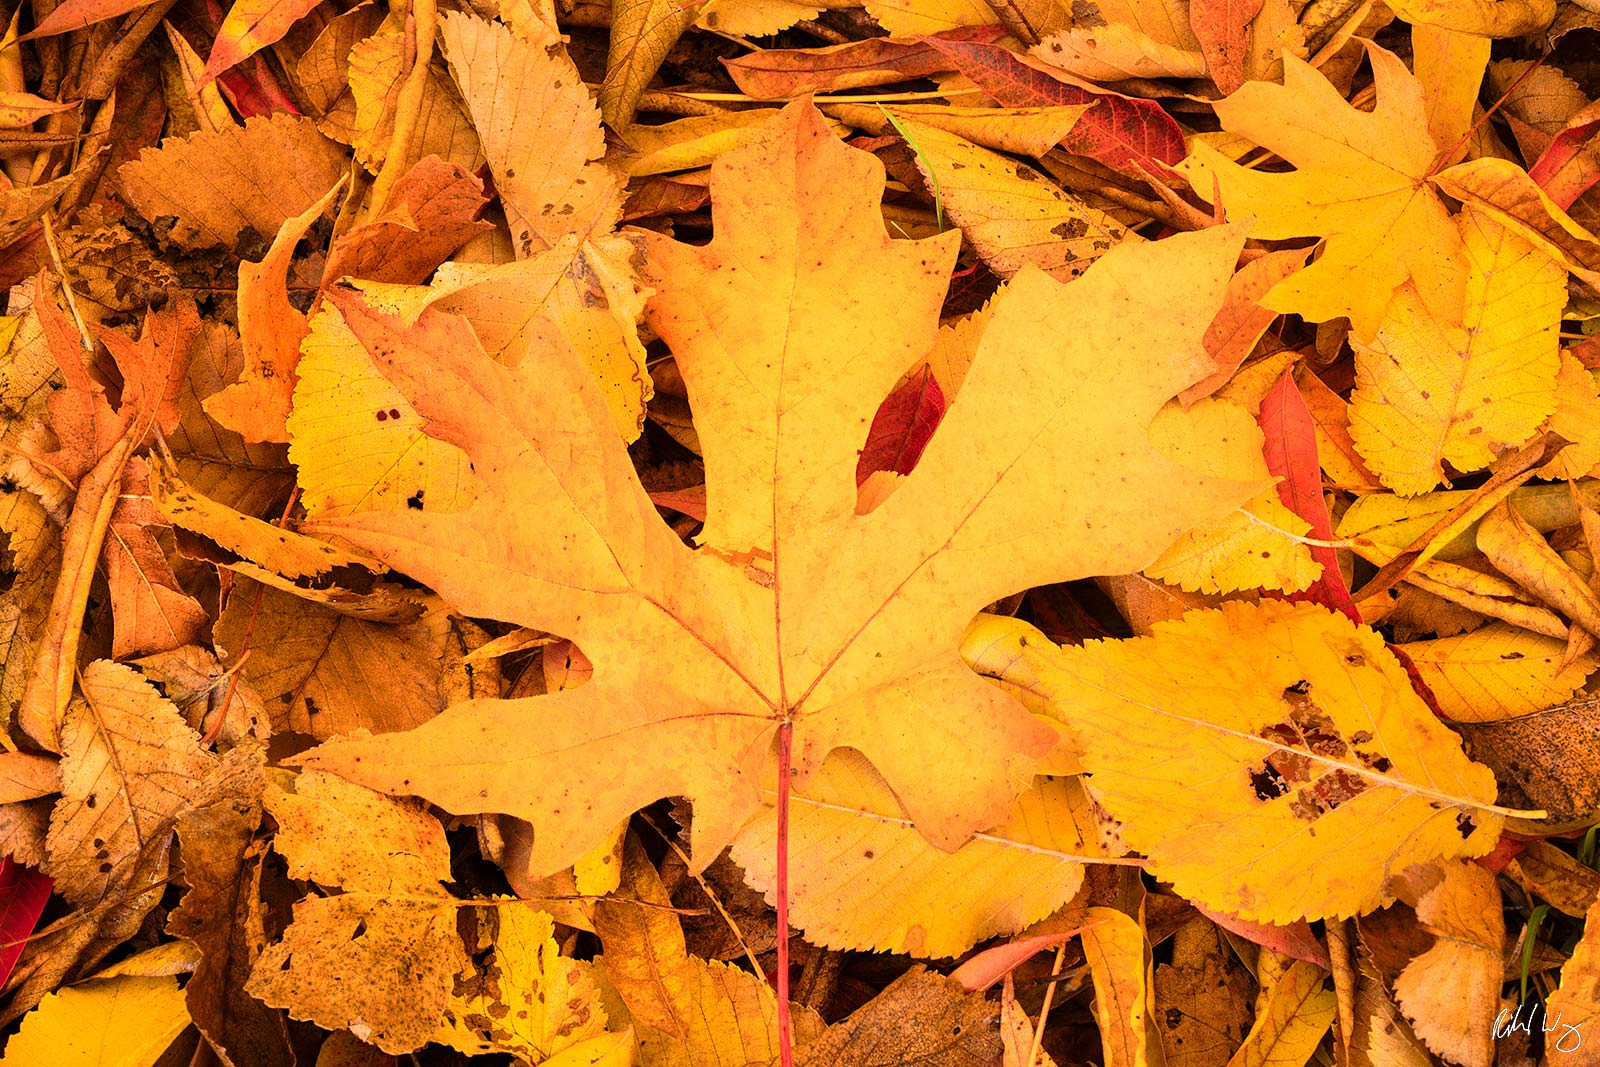 Autumn Leaves on the Ground, Redwood Regional Park, California, photo, photo